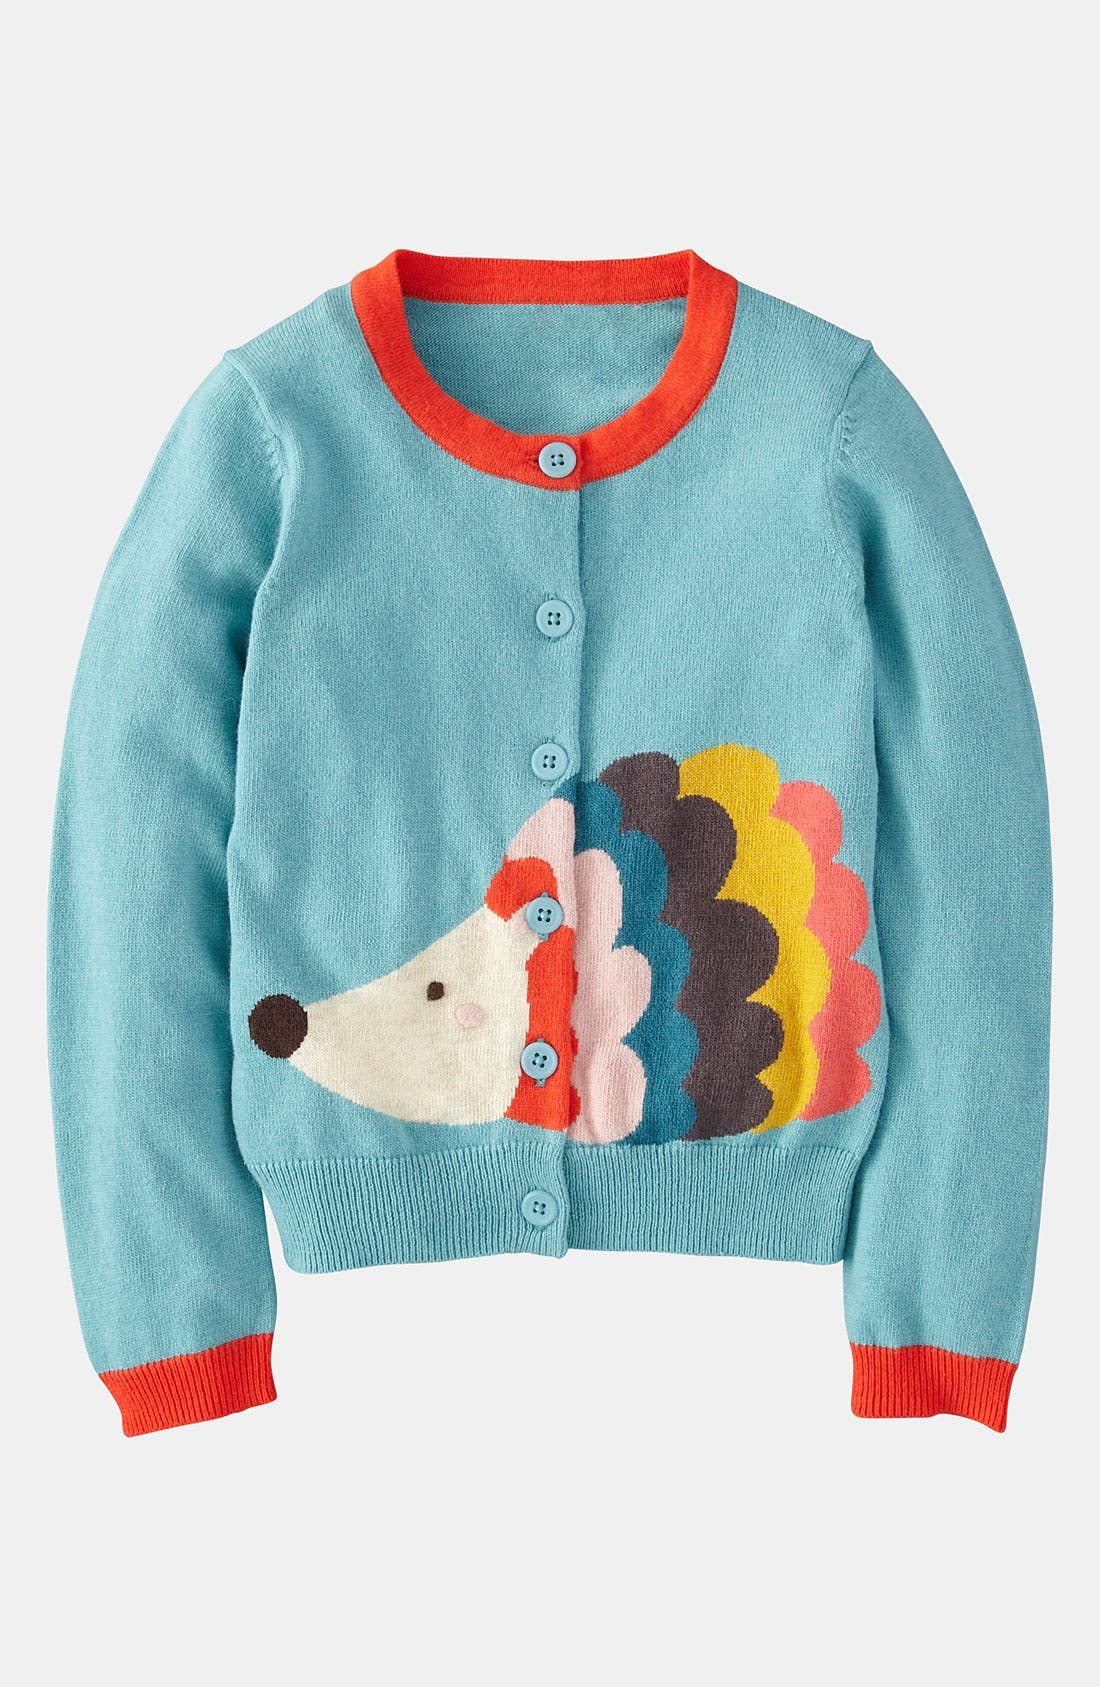 Main Image - Mini Boden 'Fun' Cardigan (Toddler)